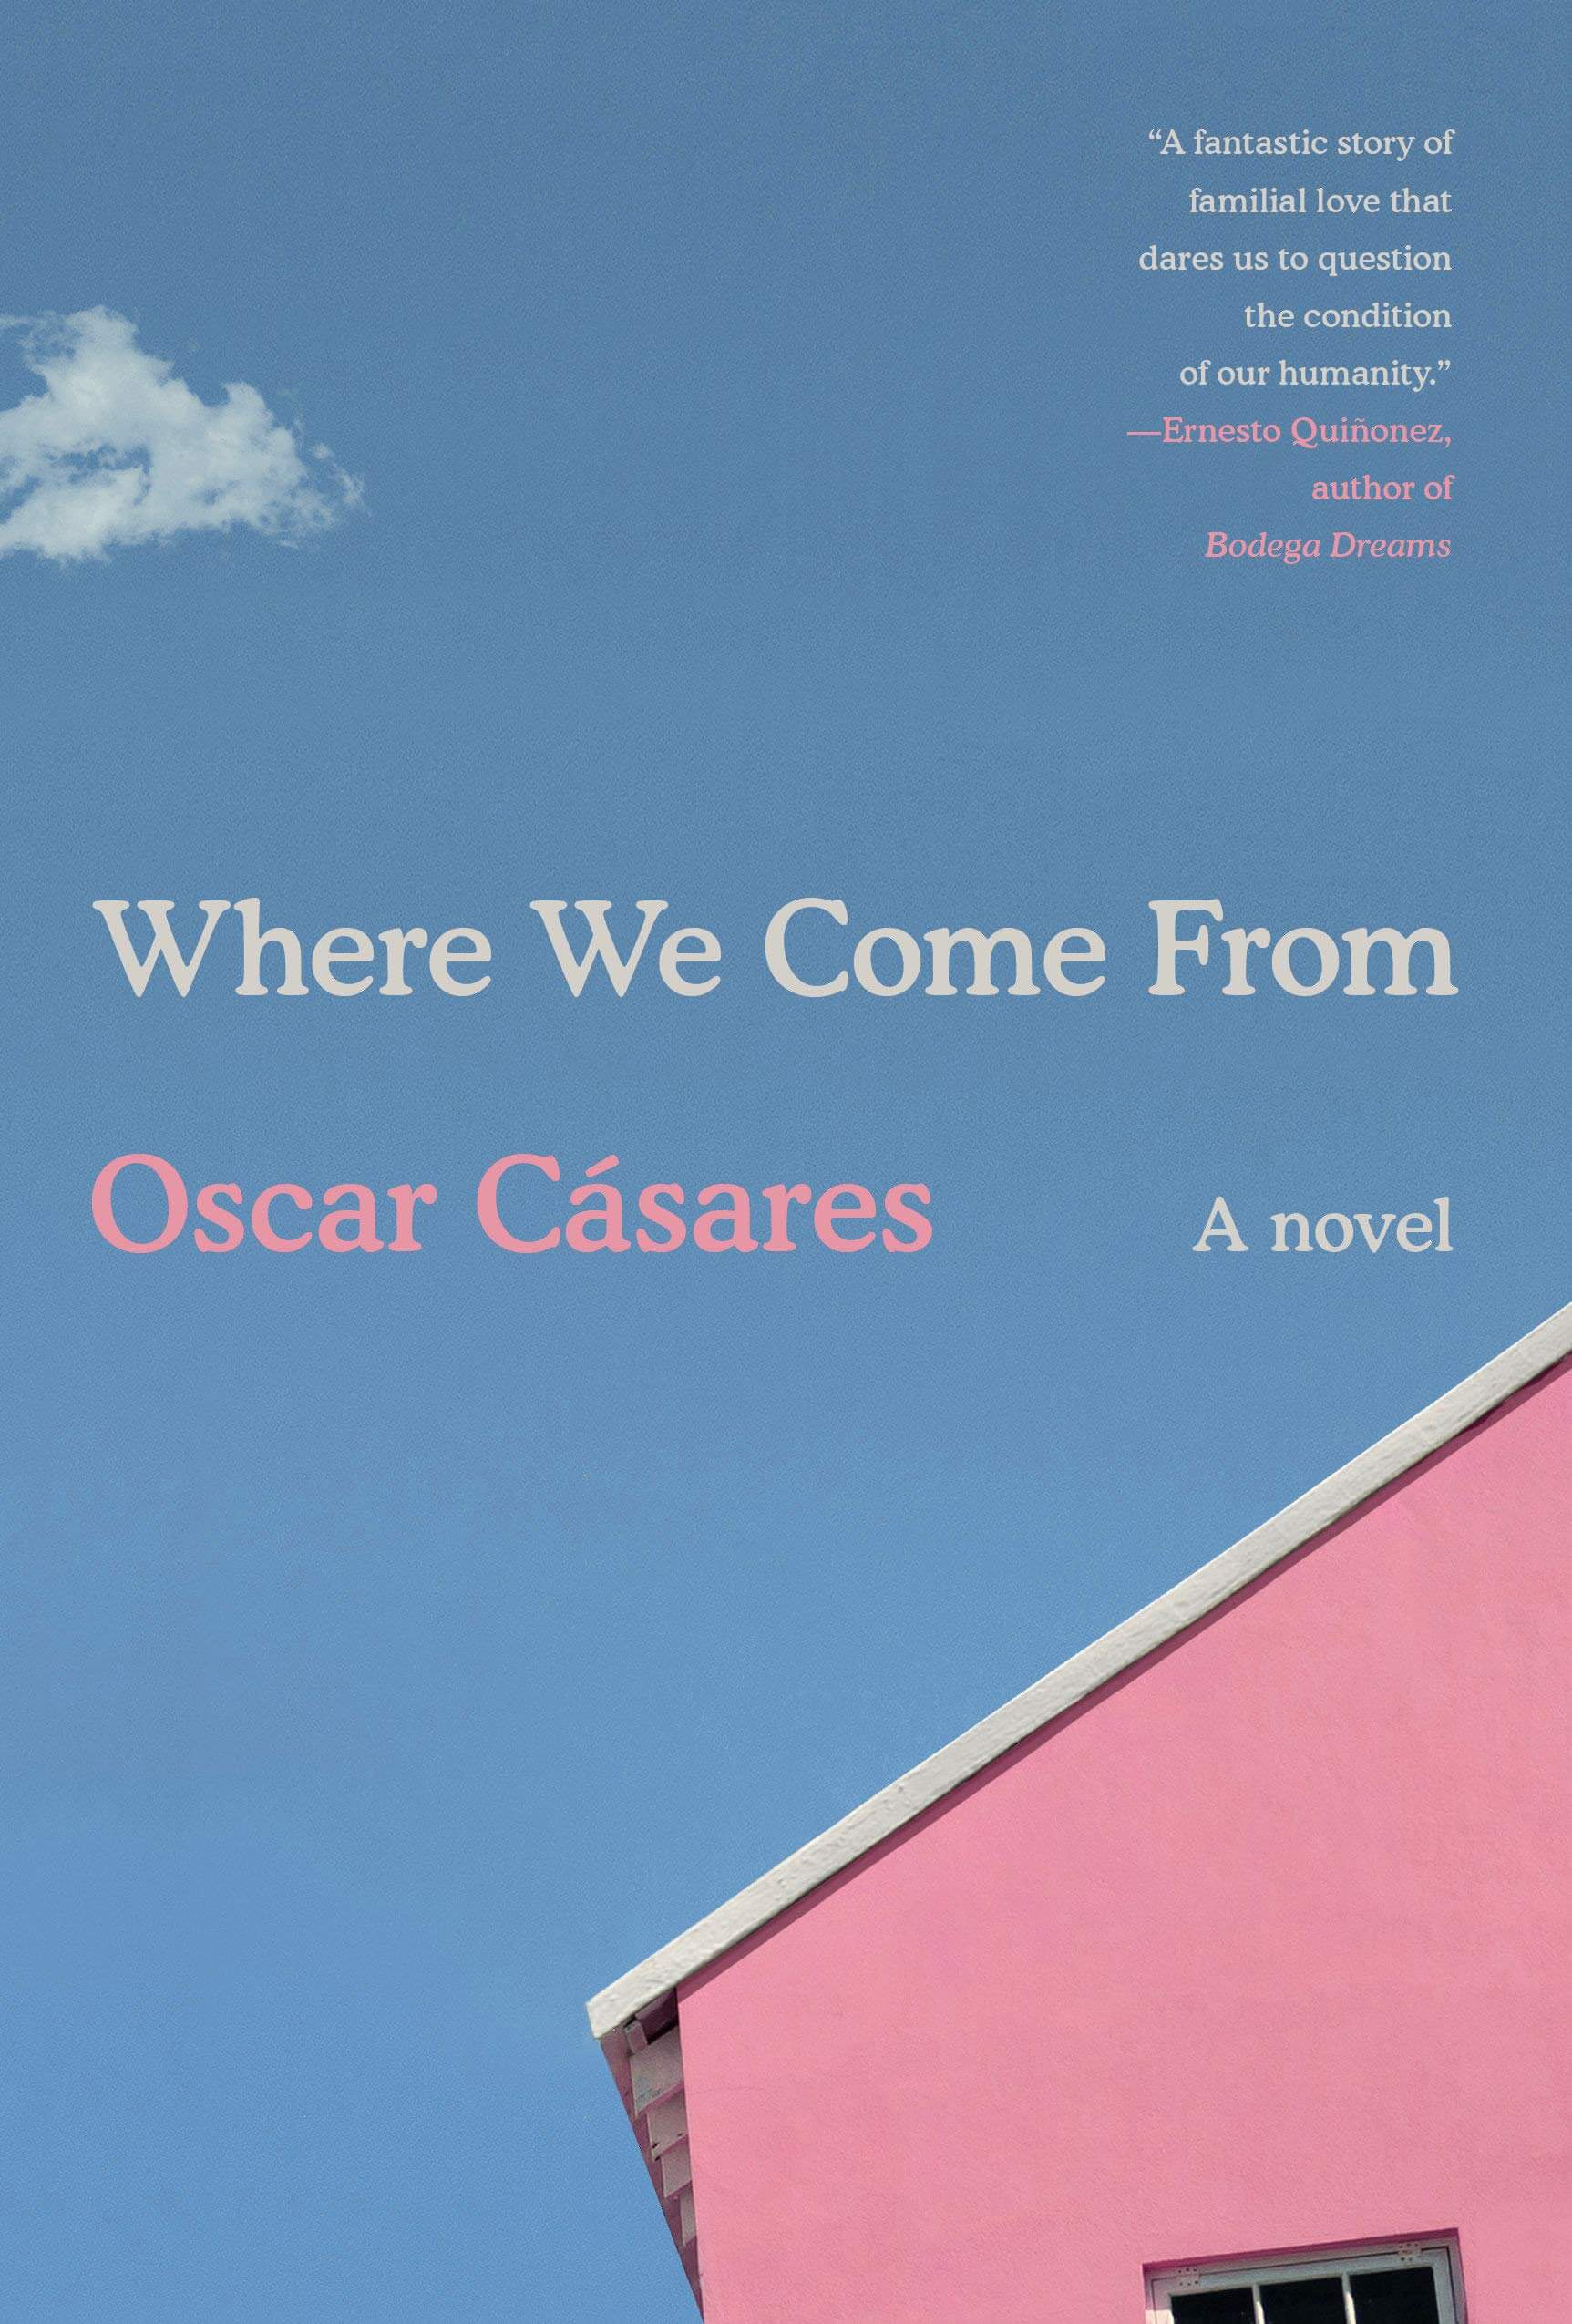 Where We Come From book cover image